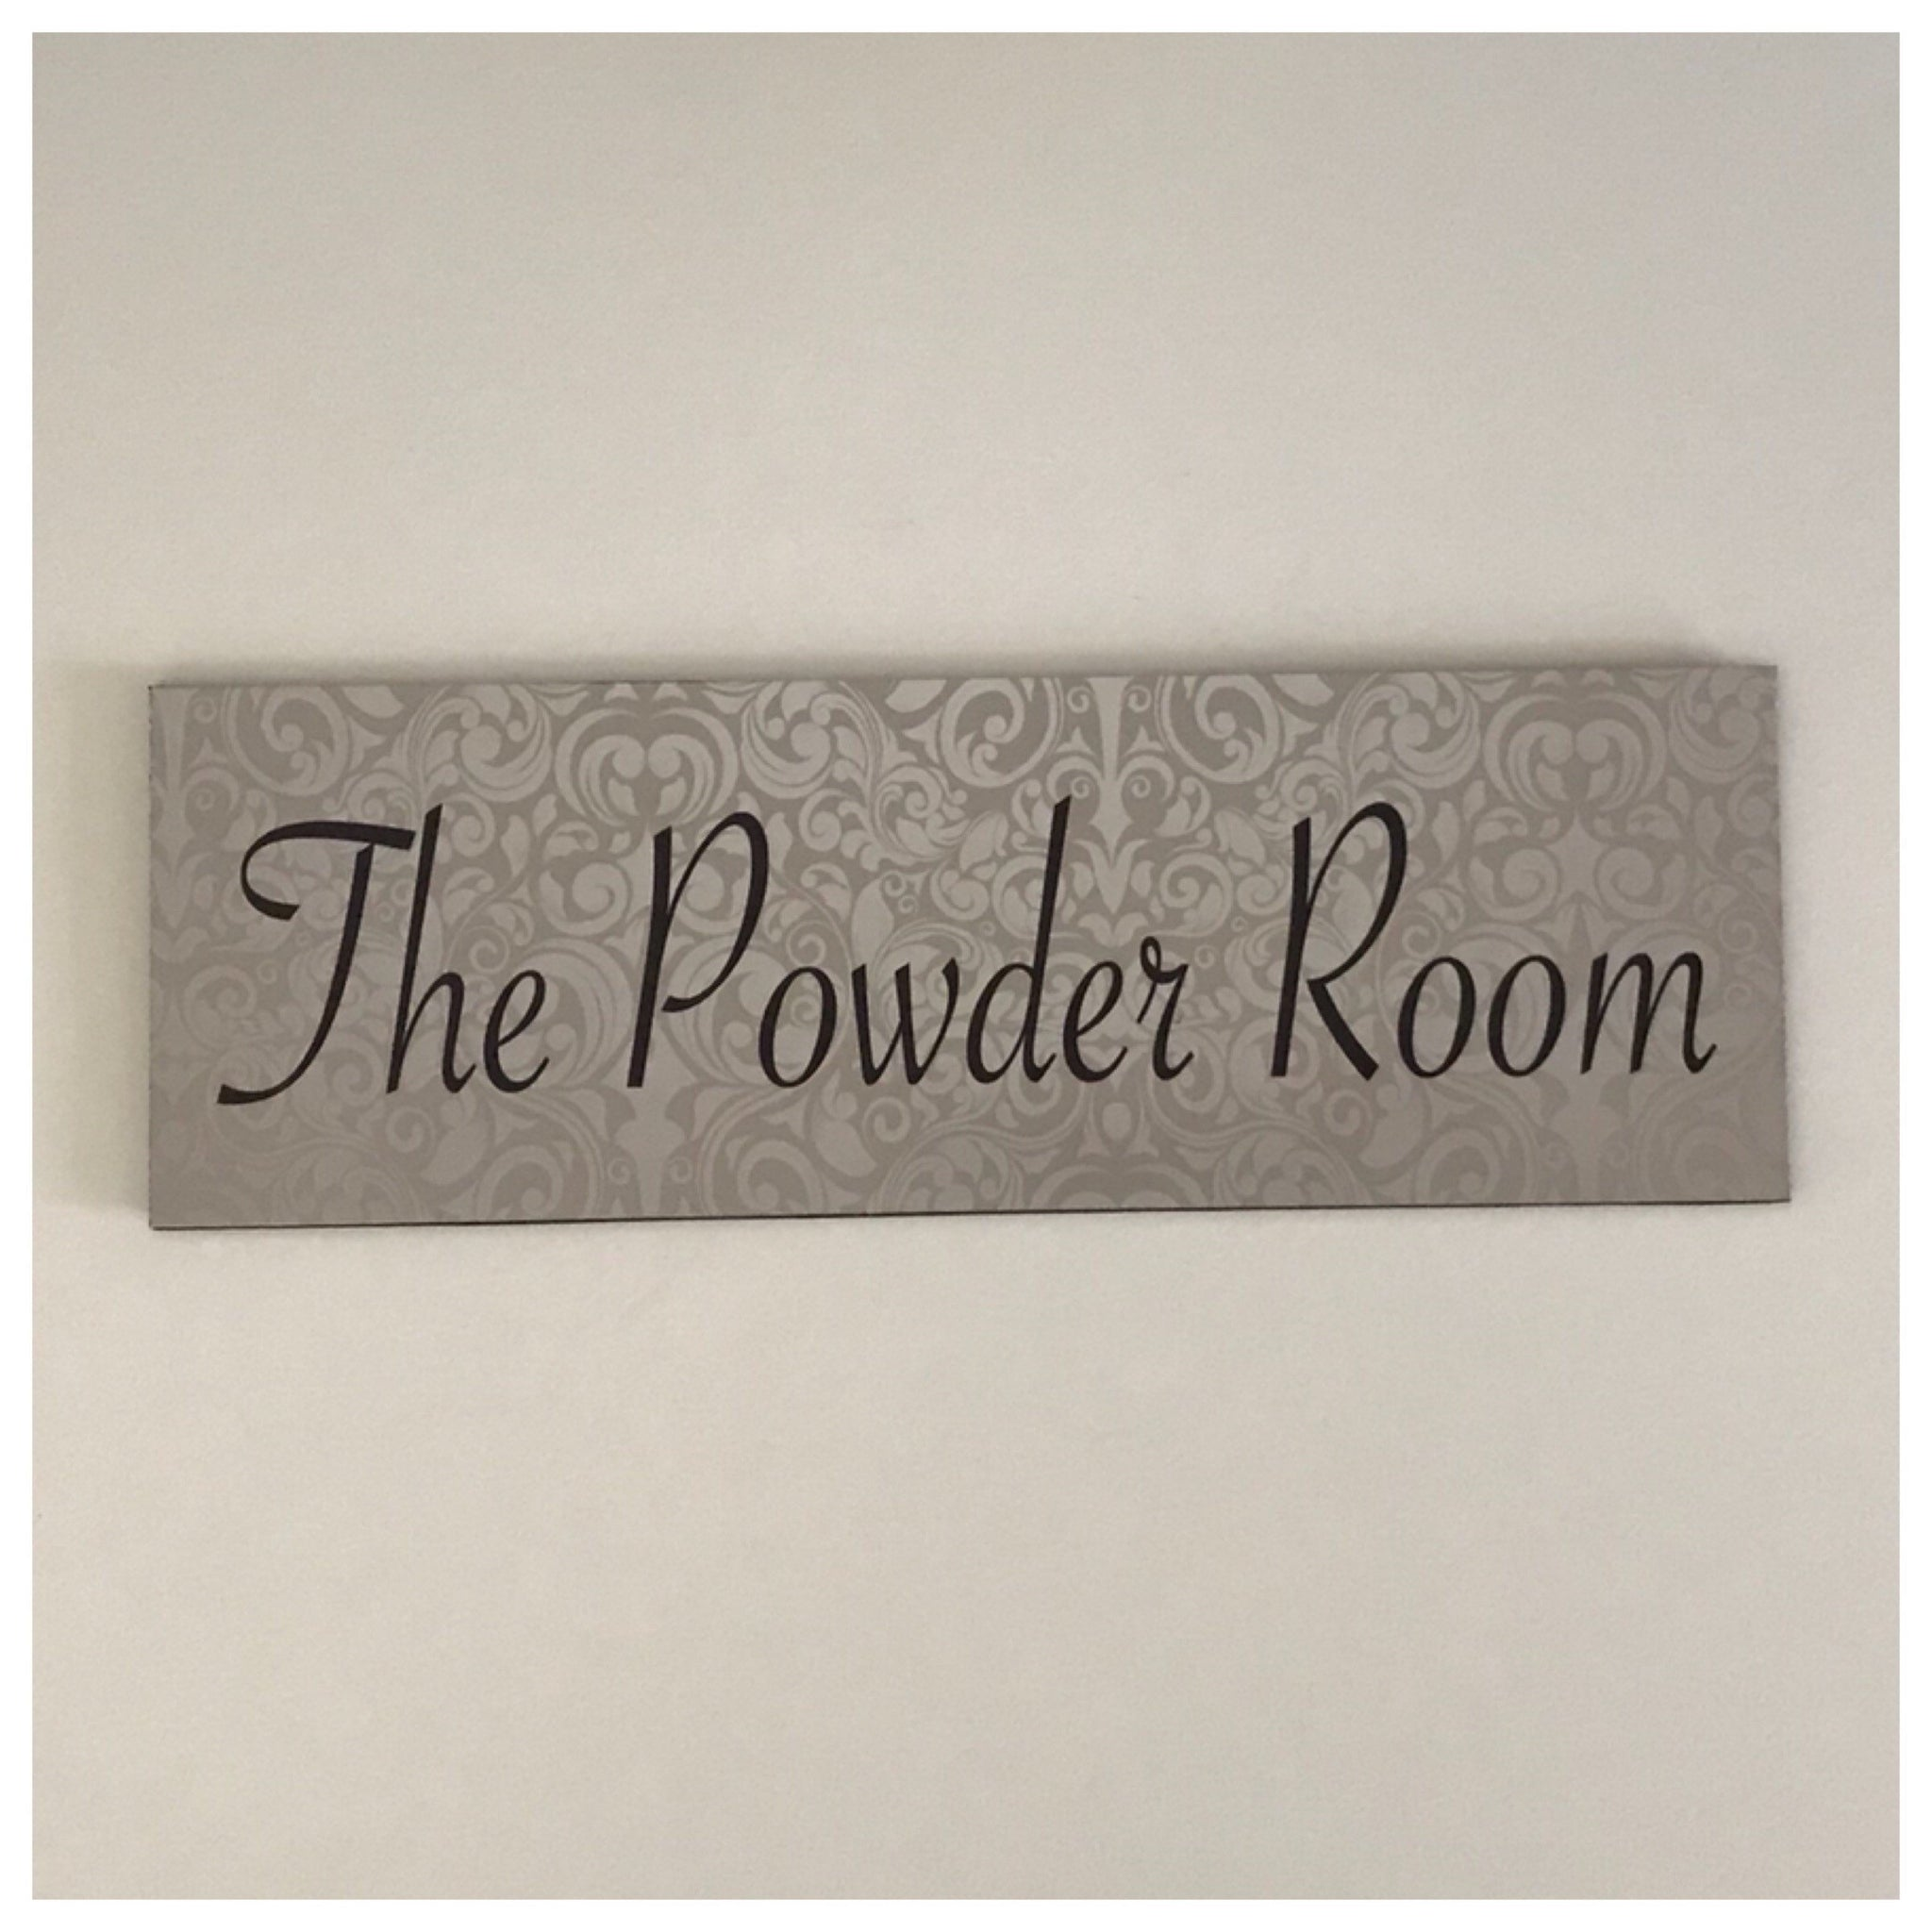 The Powder Room Silver Sign Plaque or Hanging